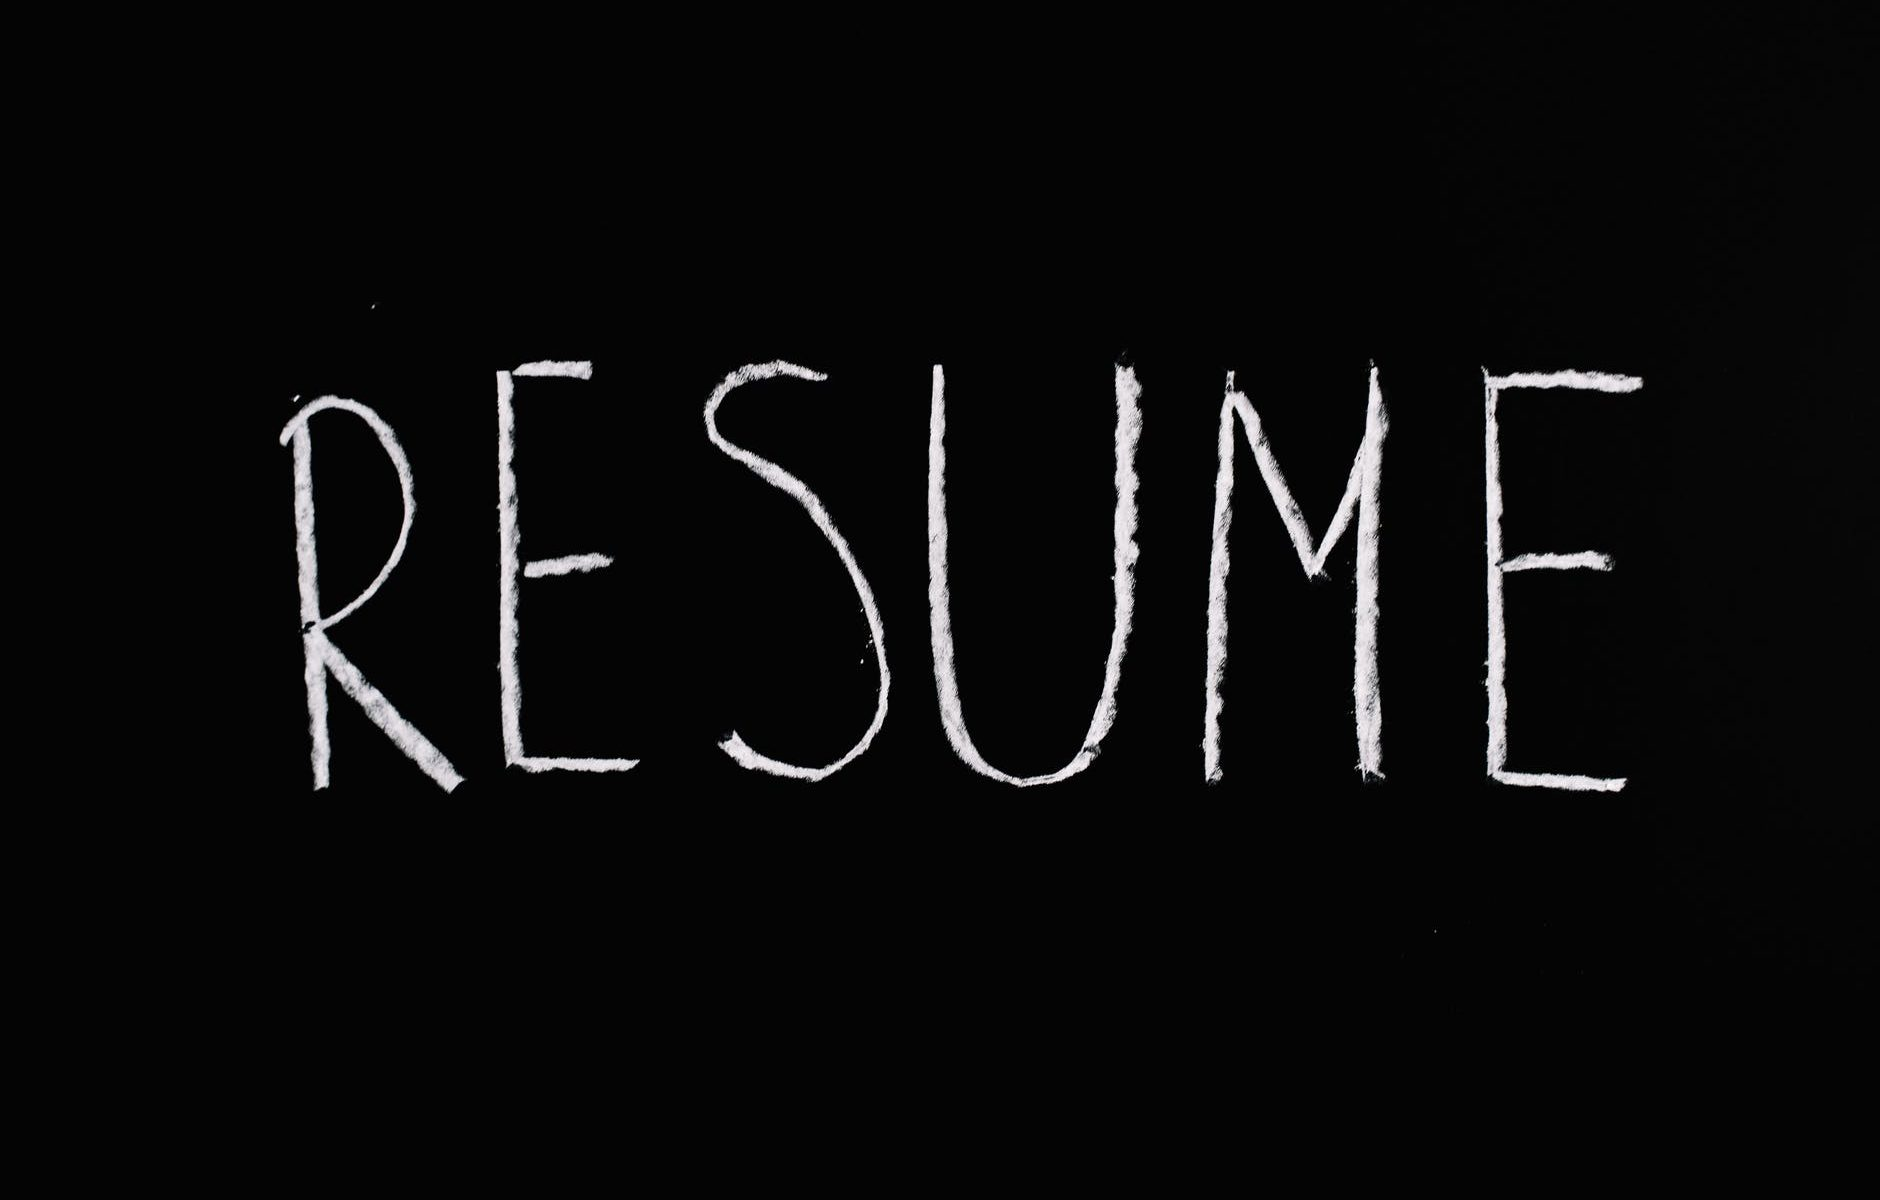 resume lettering text on black background